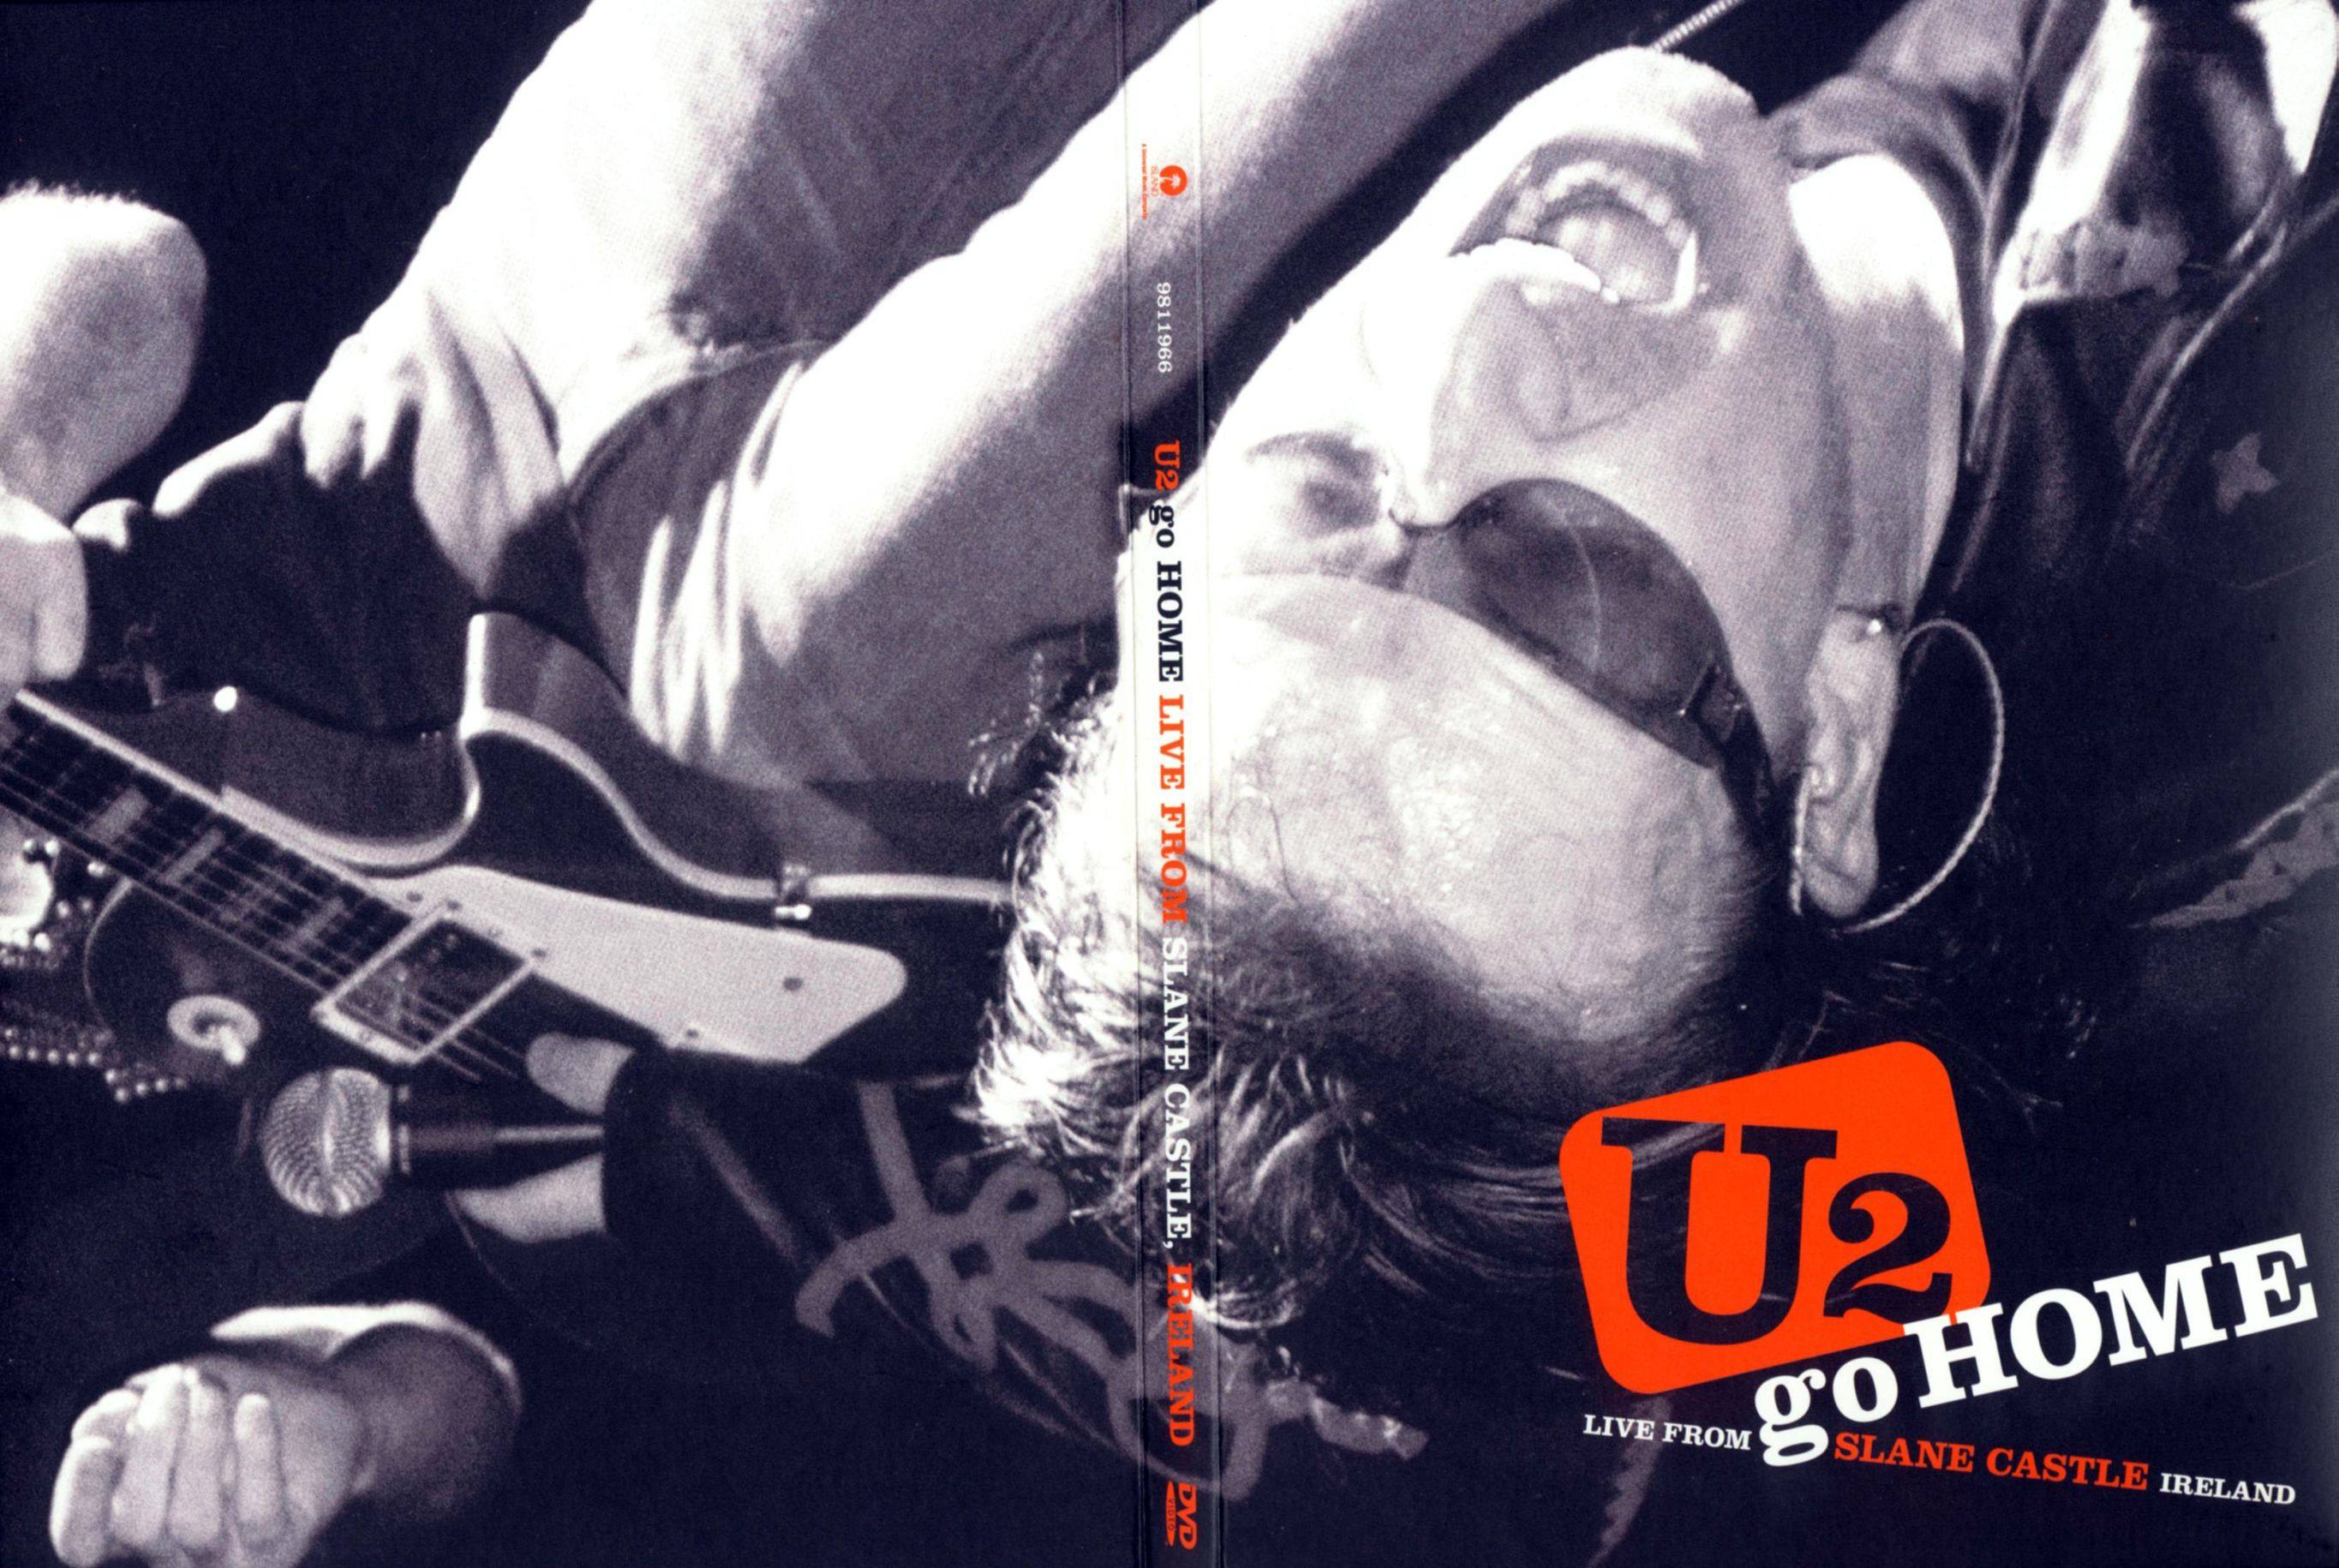 u2 go home live from slane castle ireland